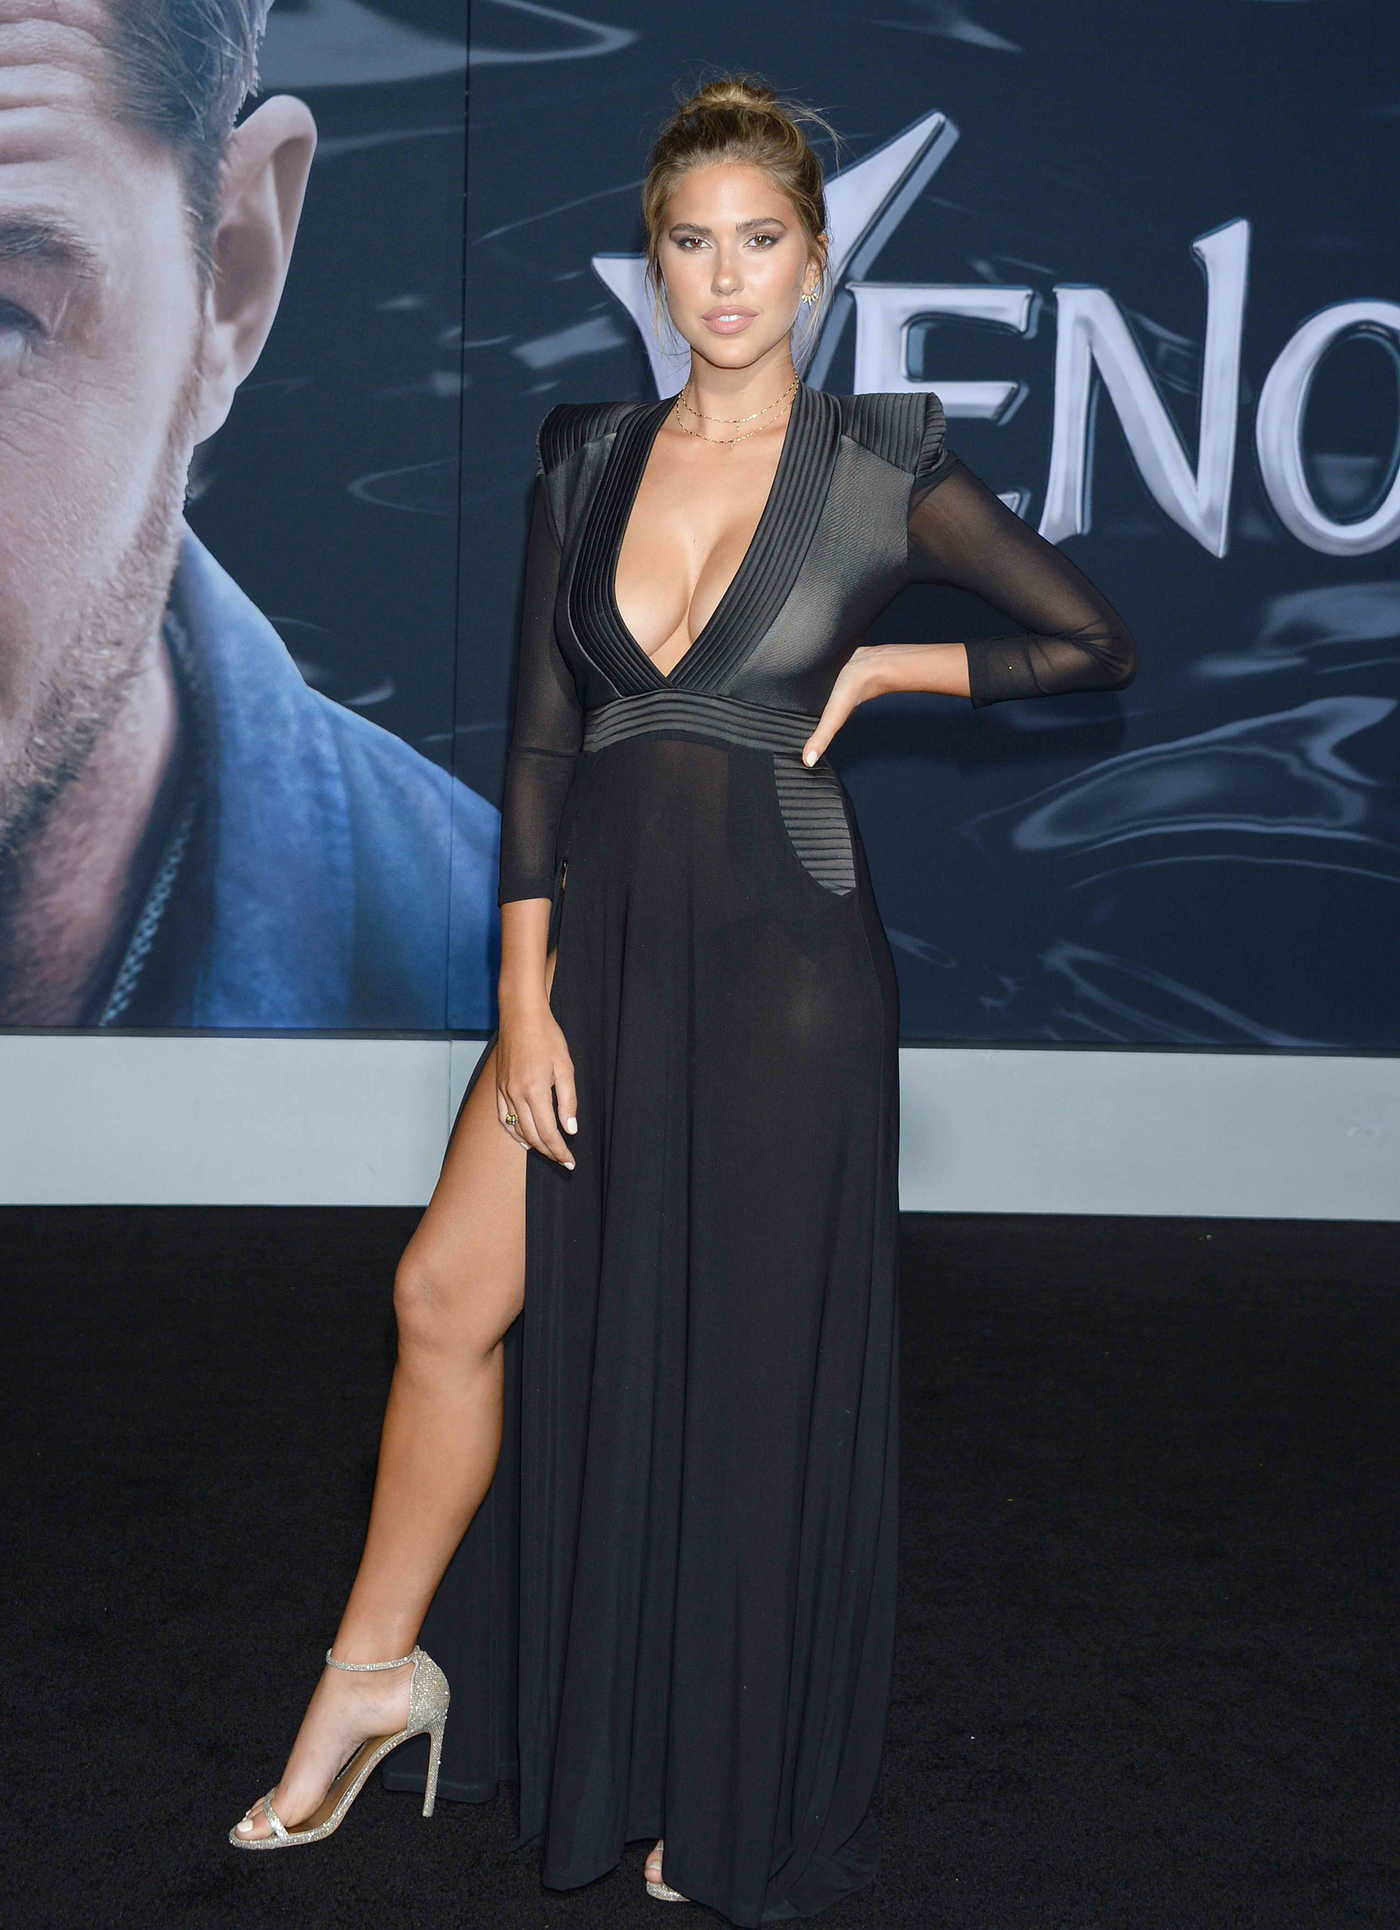 Kara Del Toro at Venom Premiere in LA 10/01/2018